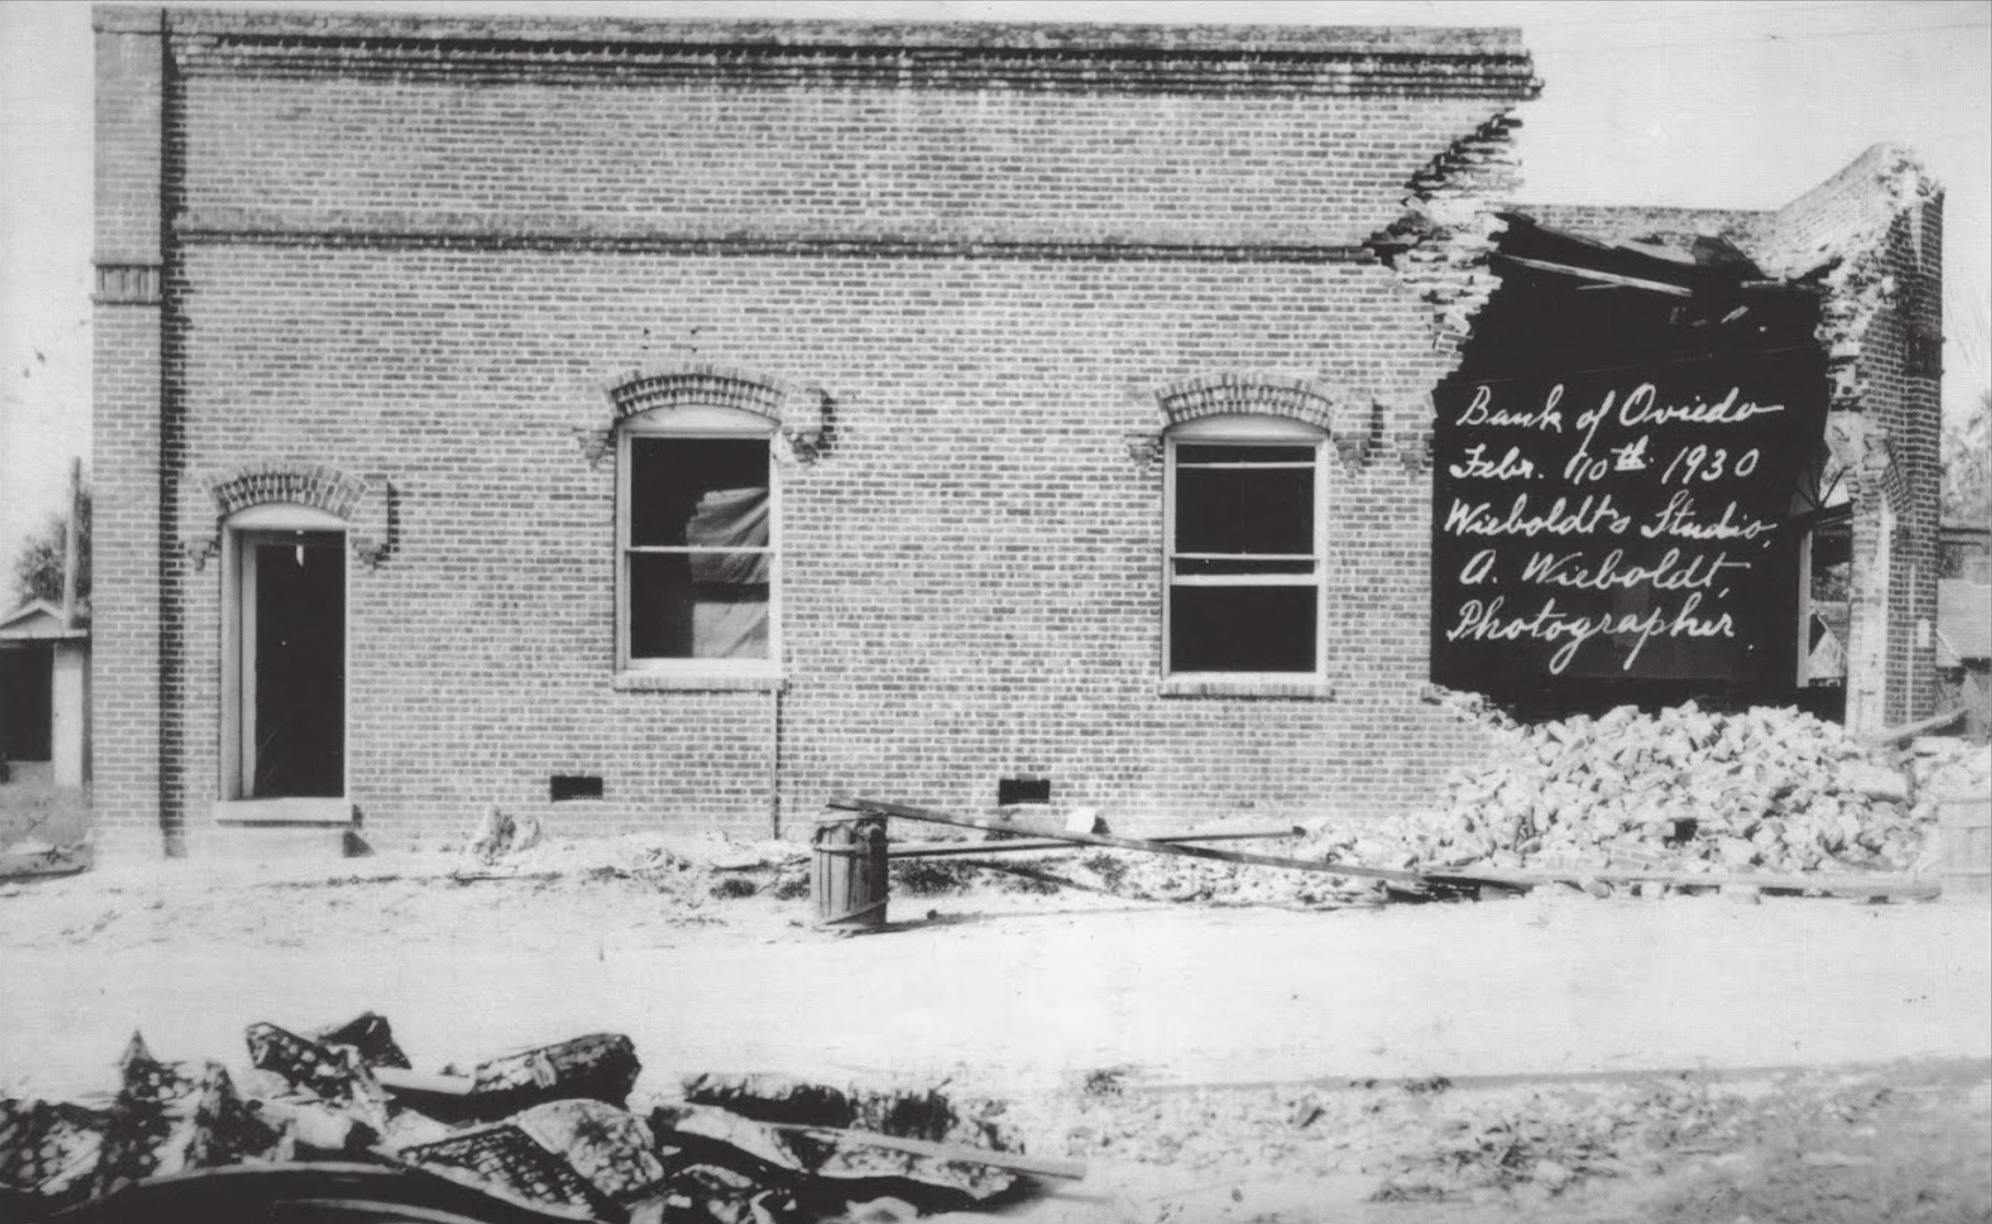 This is a picture of the bank after it was bombed in 1929